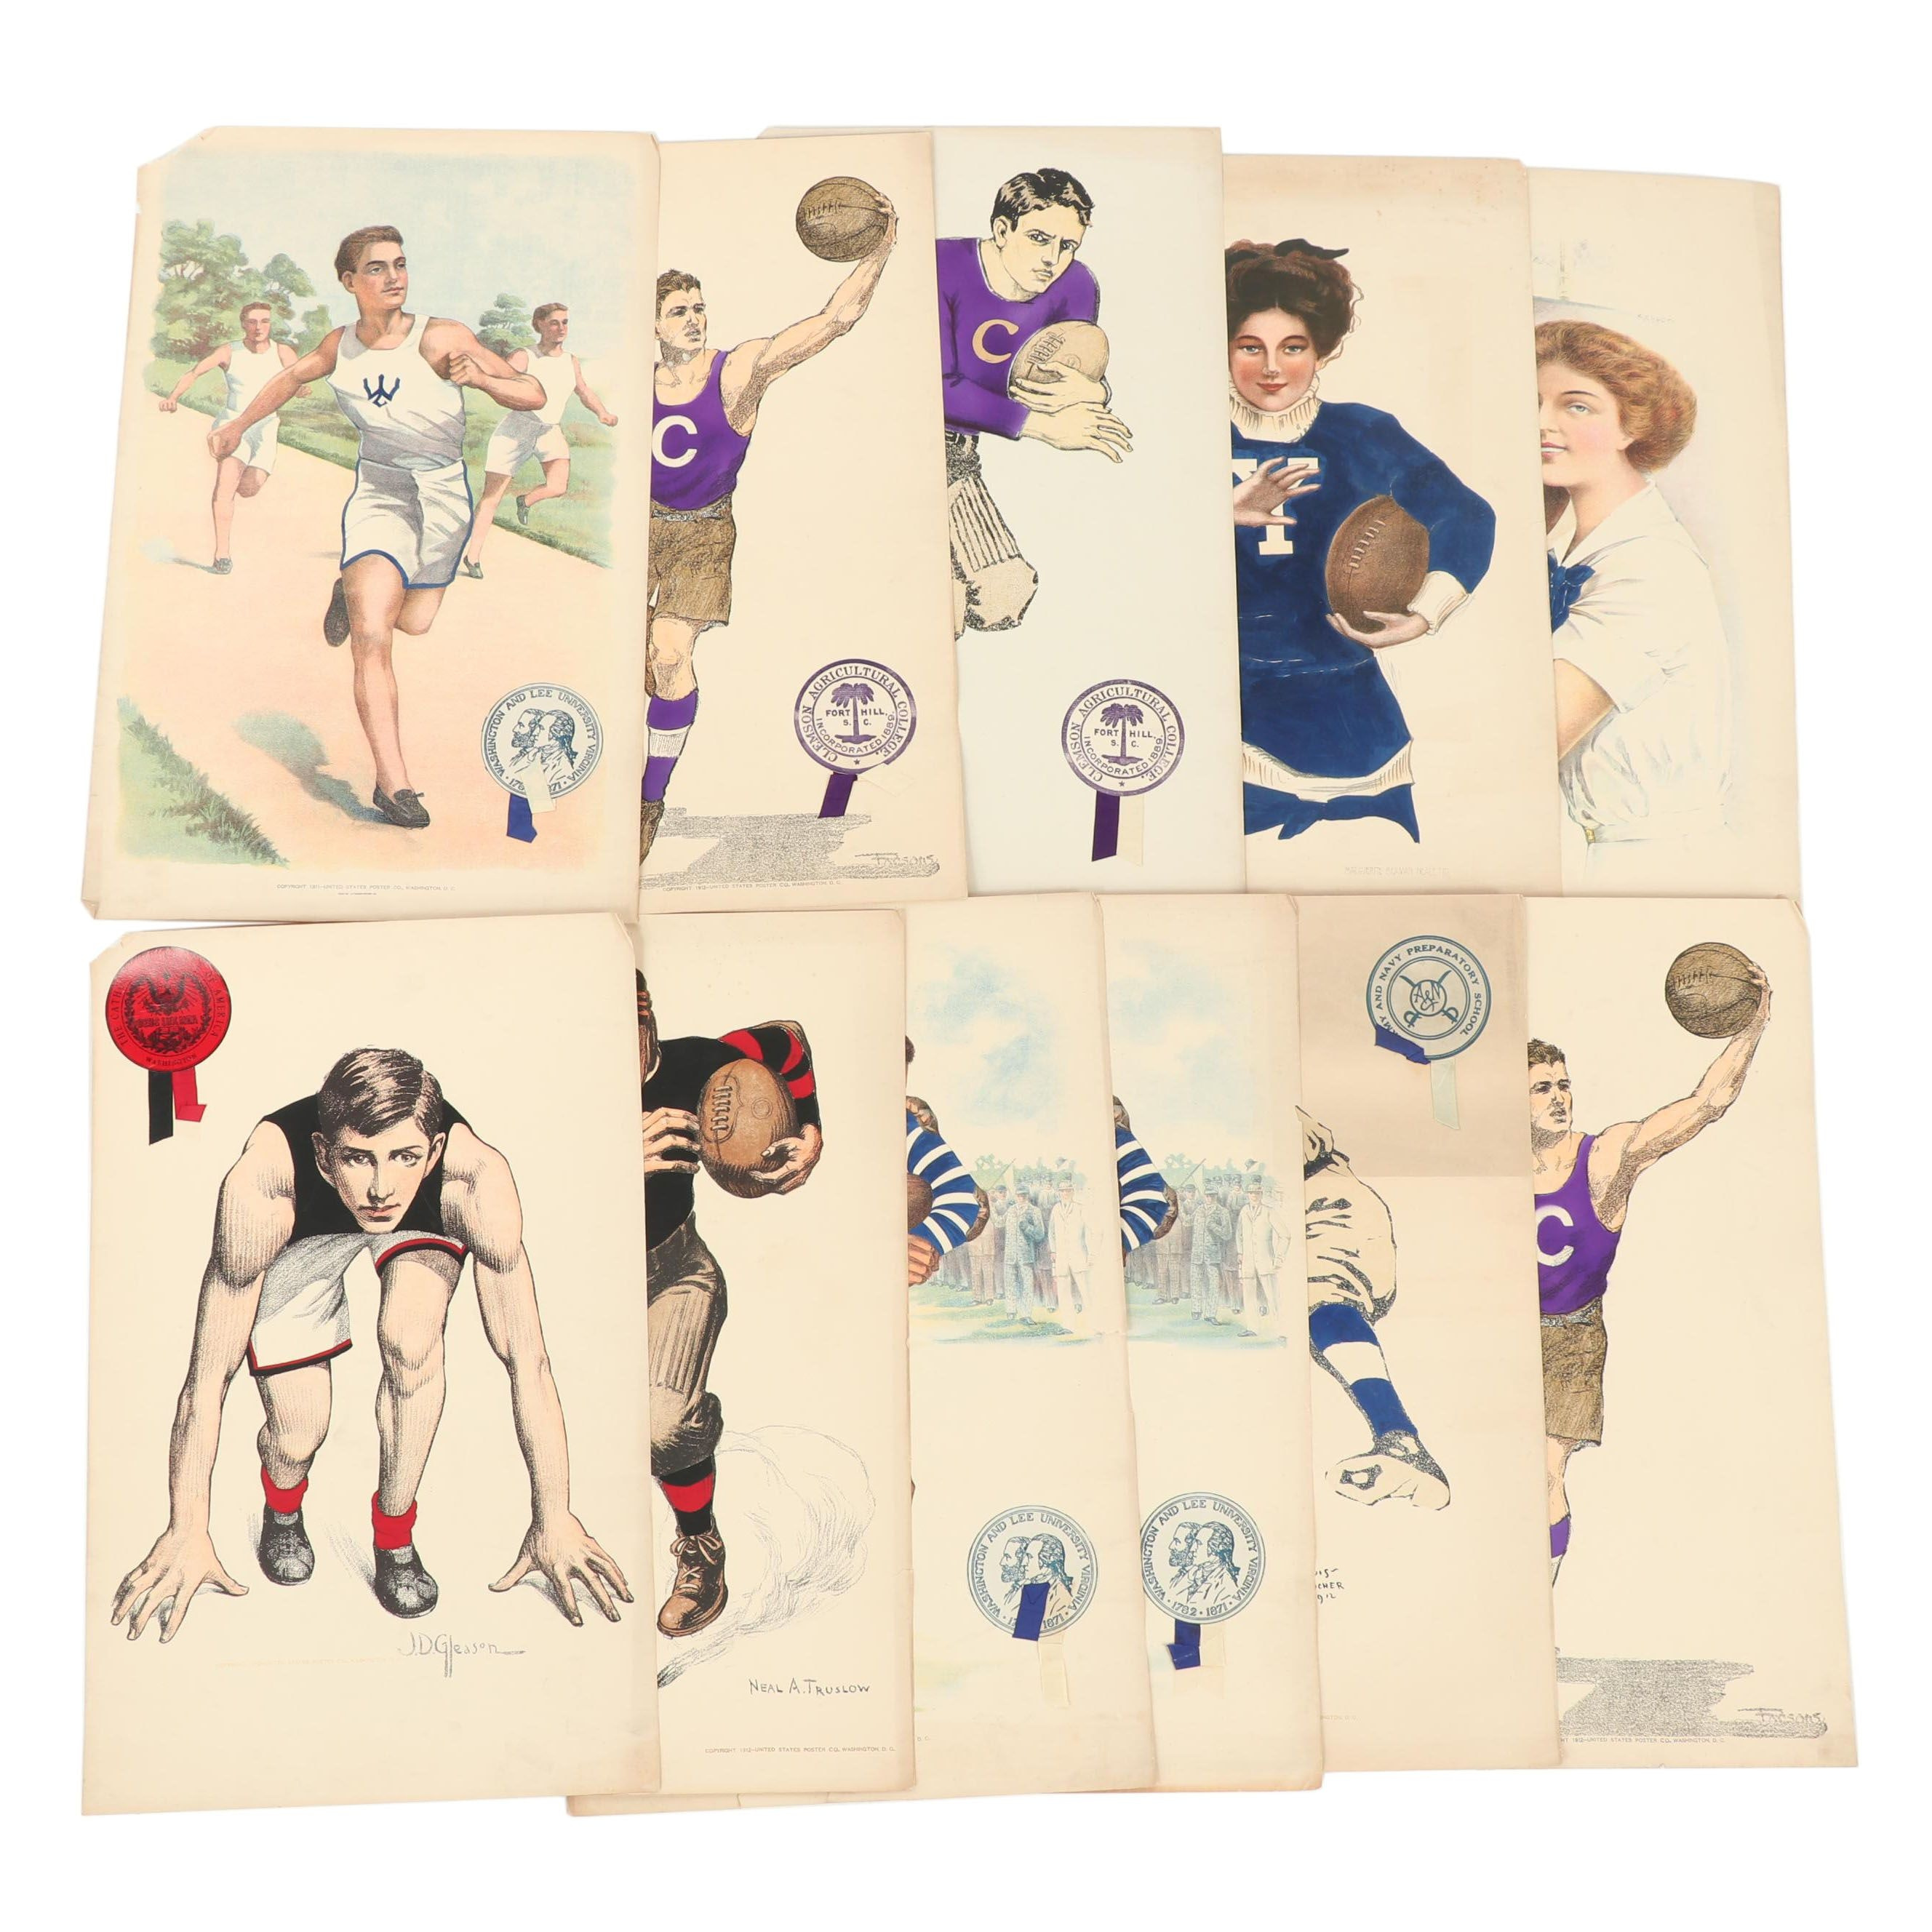 1910s Chromolithograph Sports Posters Published by the United States Poster Co.